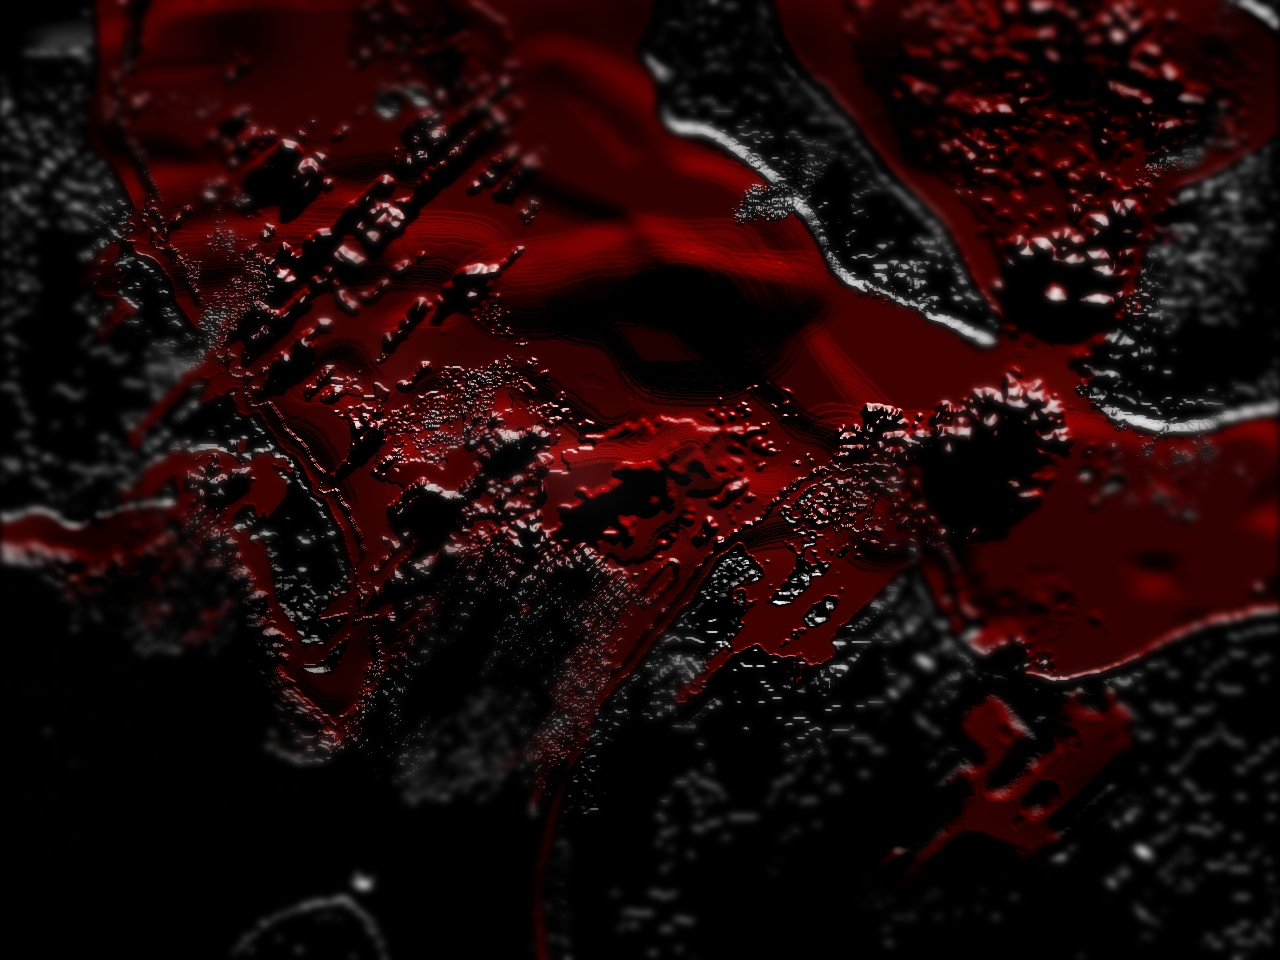 Dark Blood Wallpaper Black Blood Wallpaper Colorful Wallpaper Better